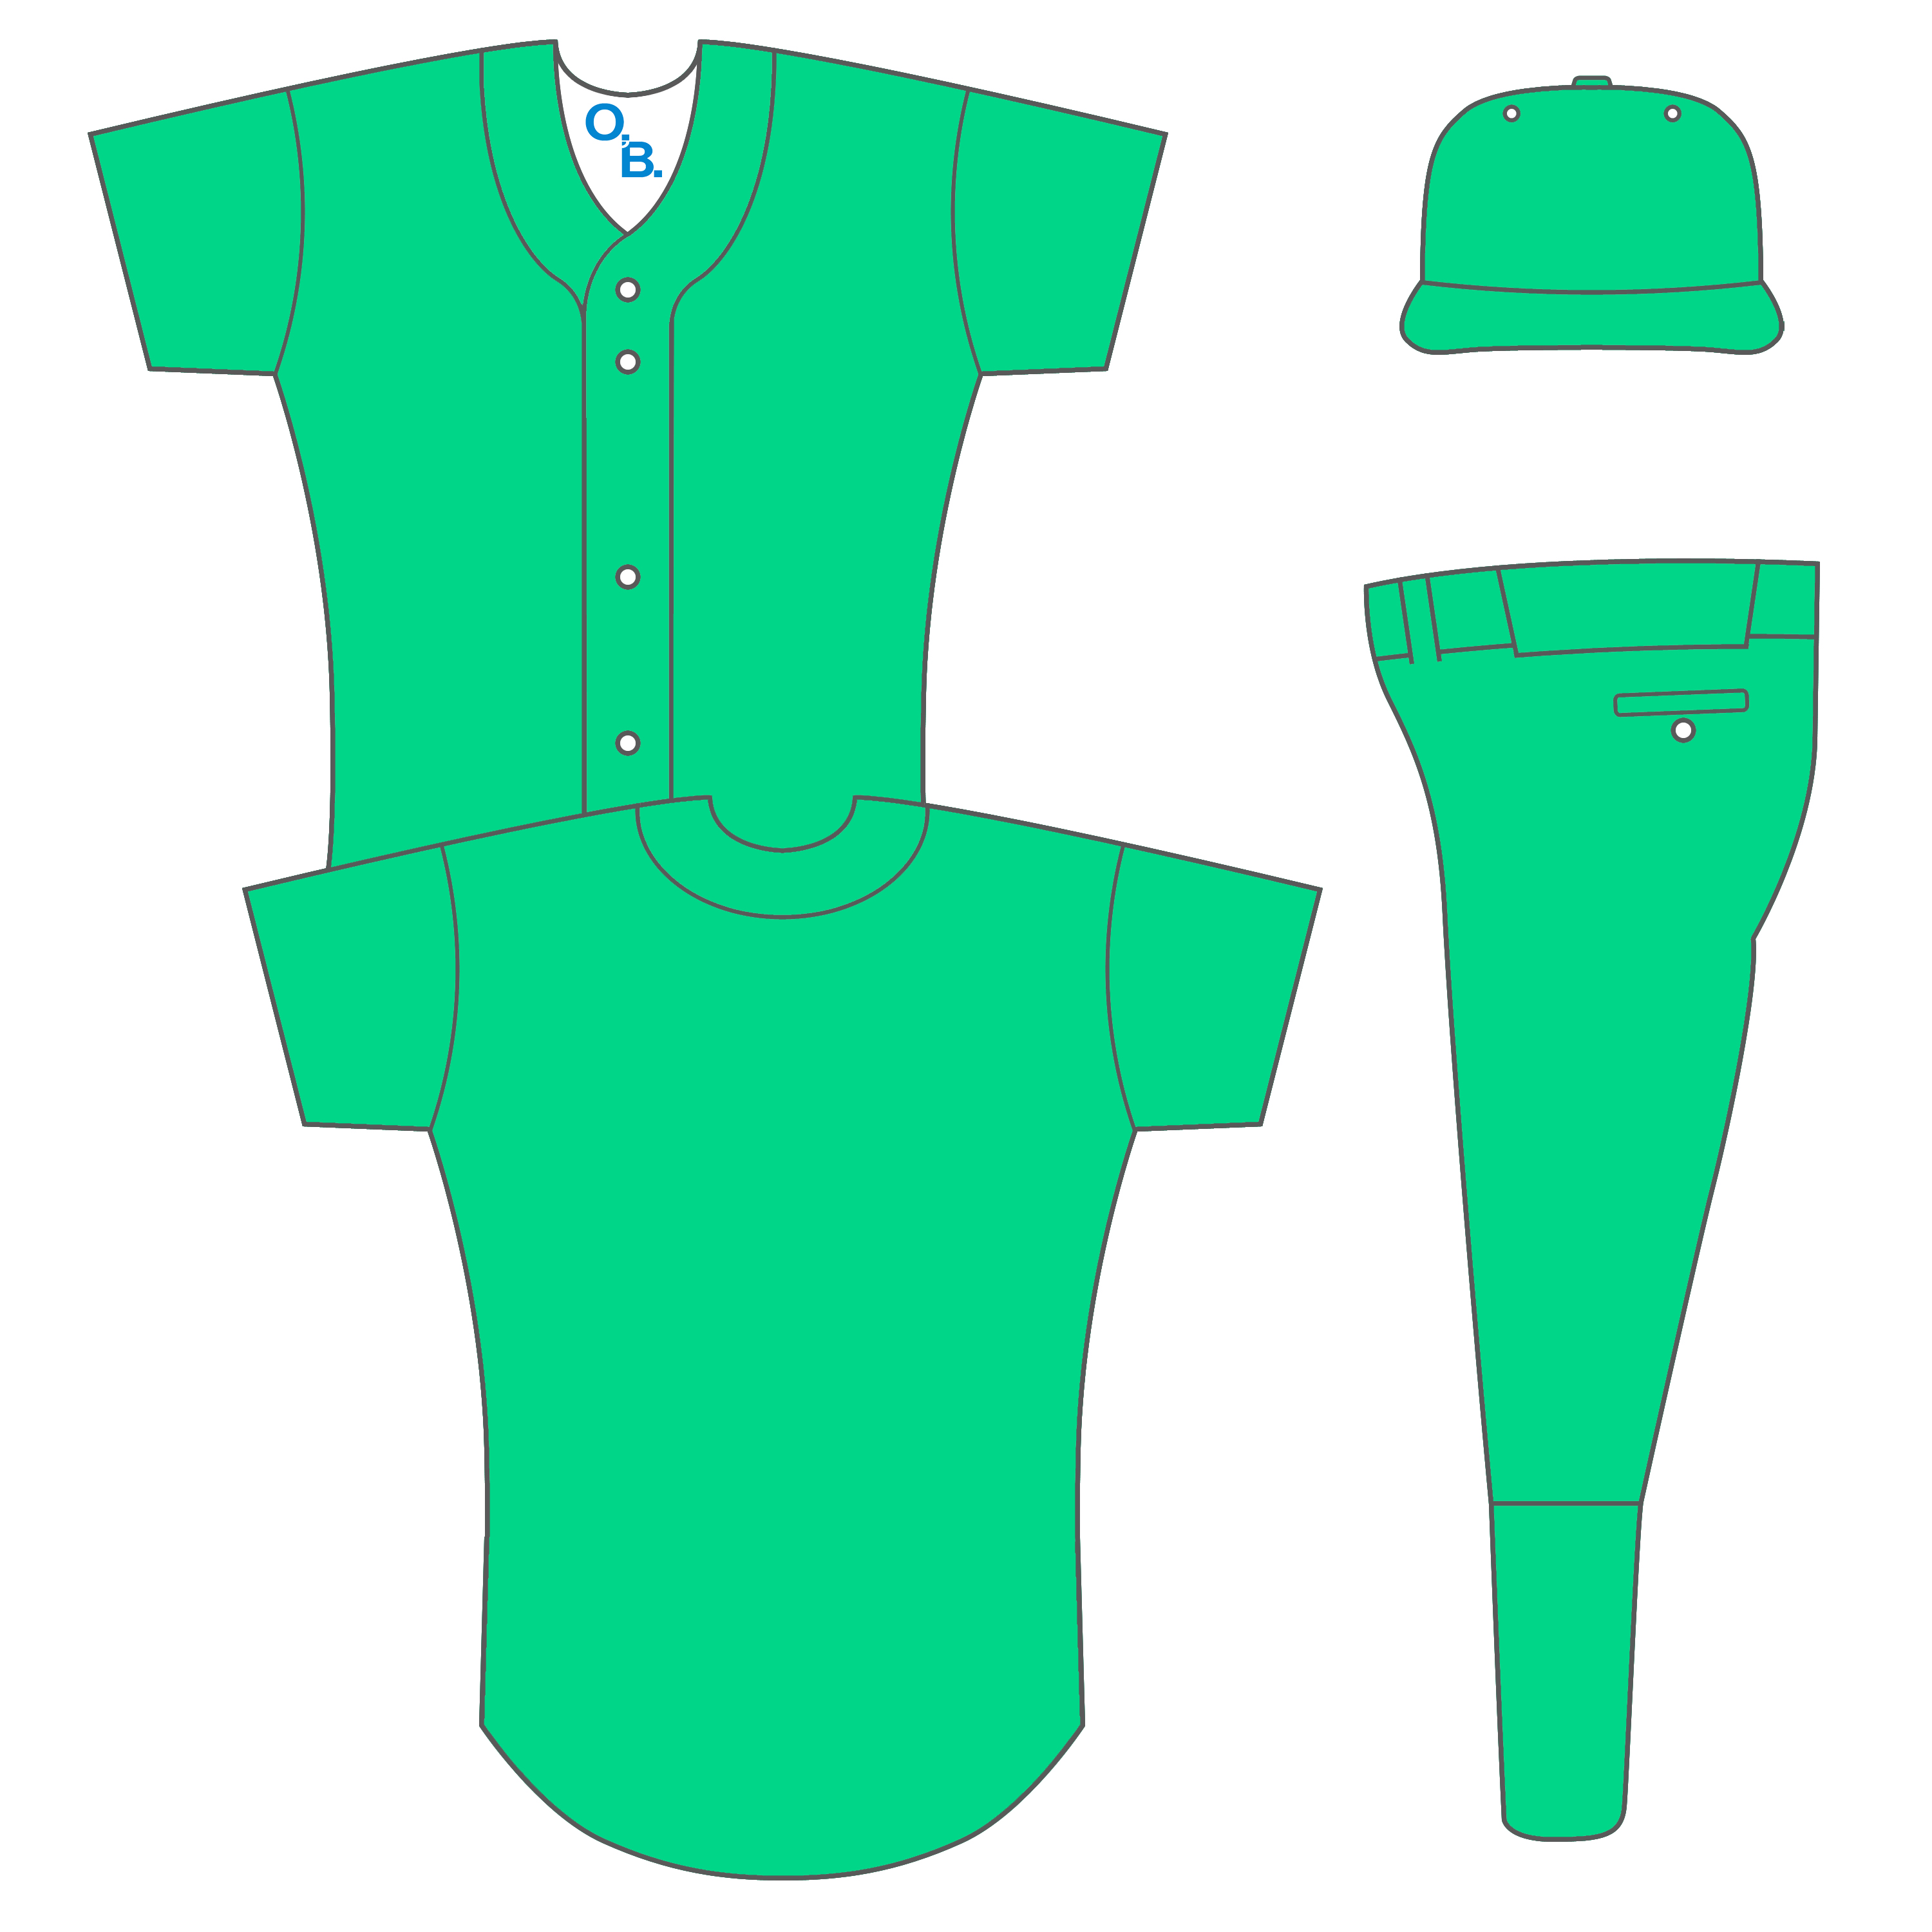 Baseball jersey template clipart best for Softball uniform design templates